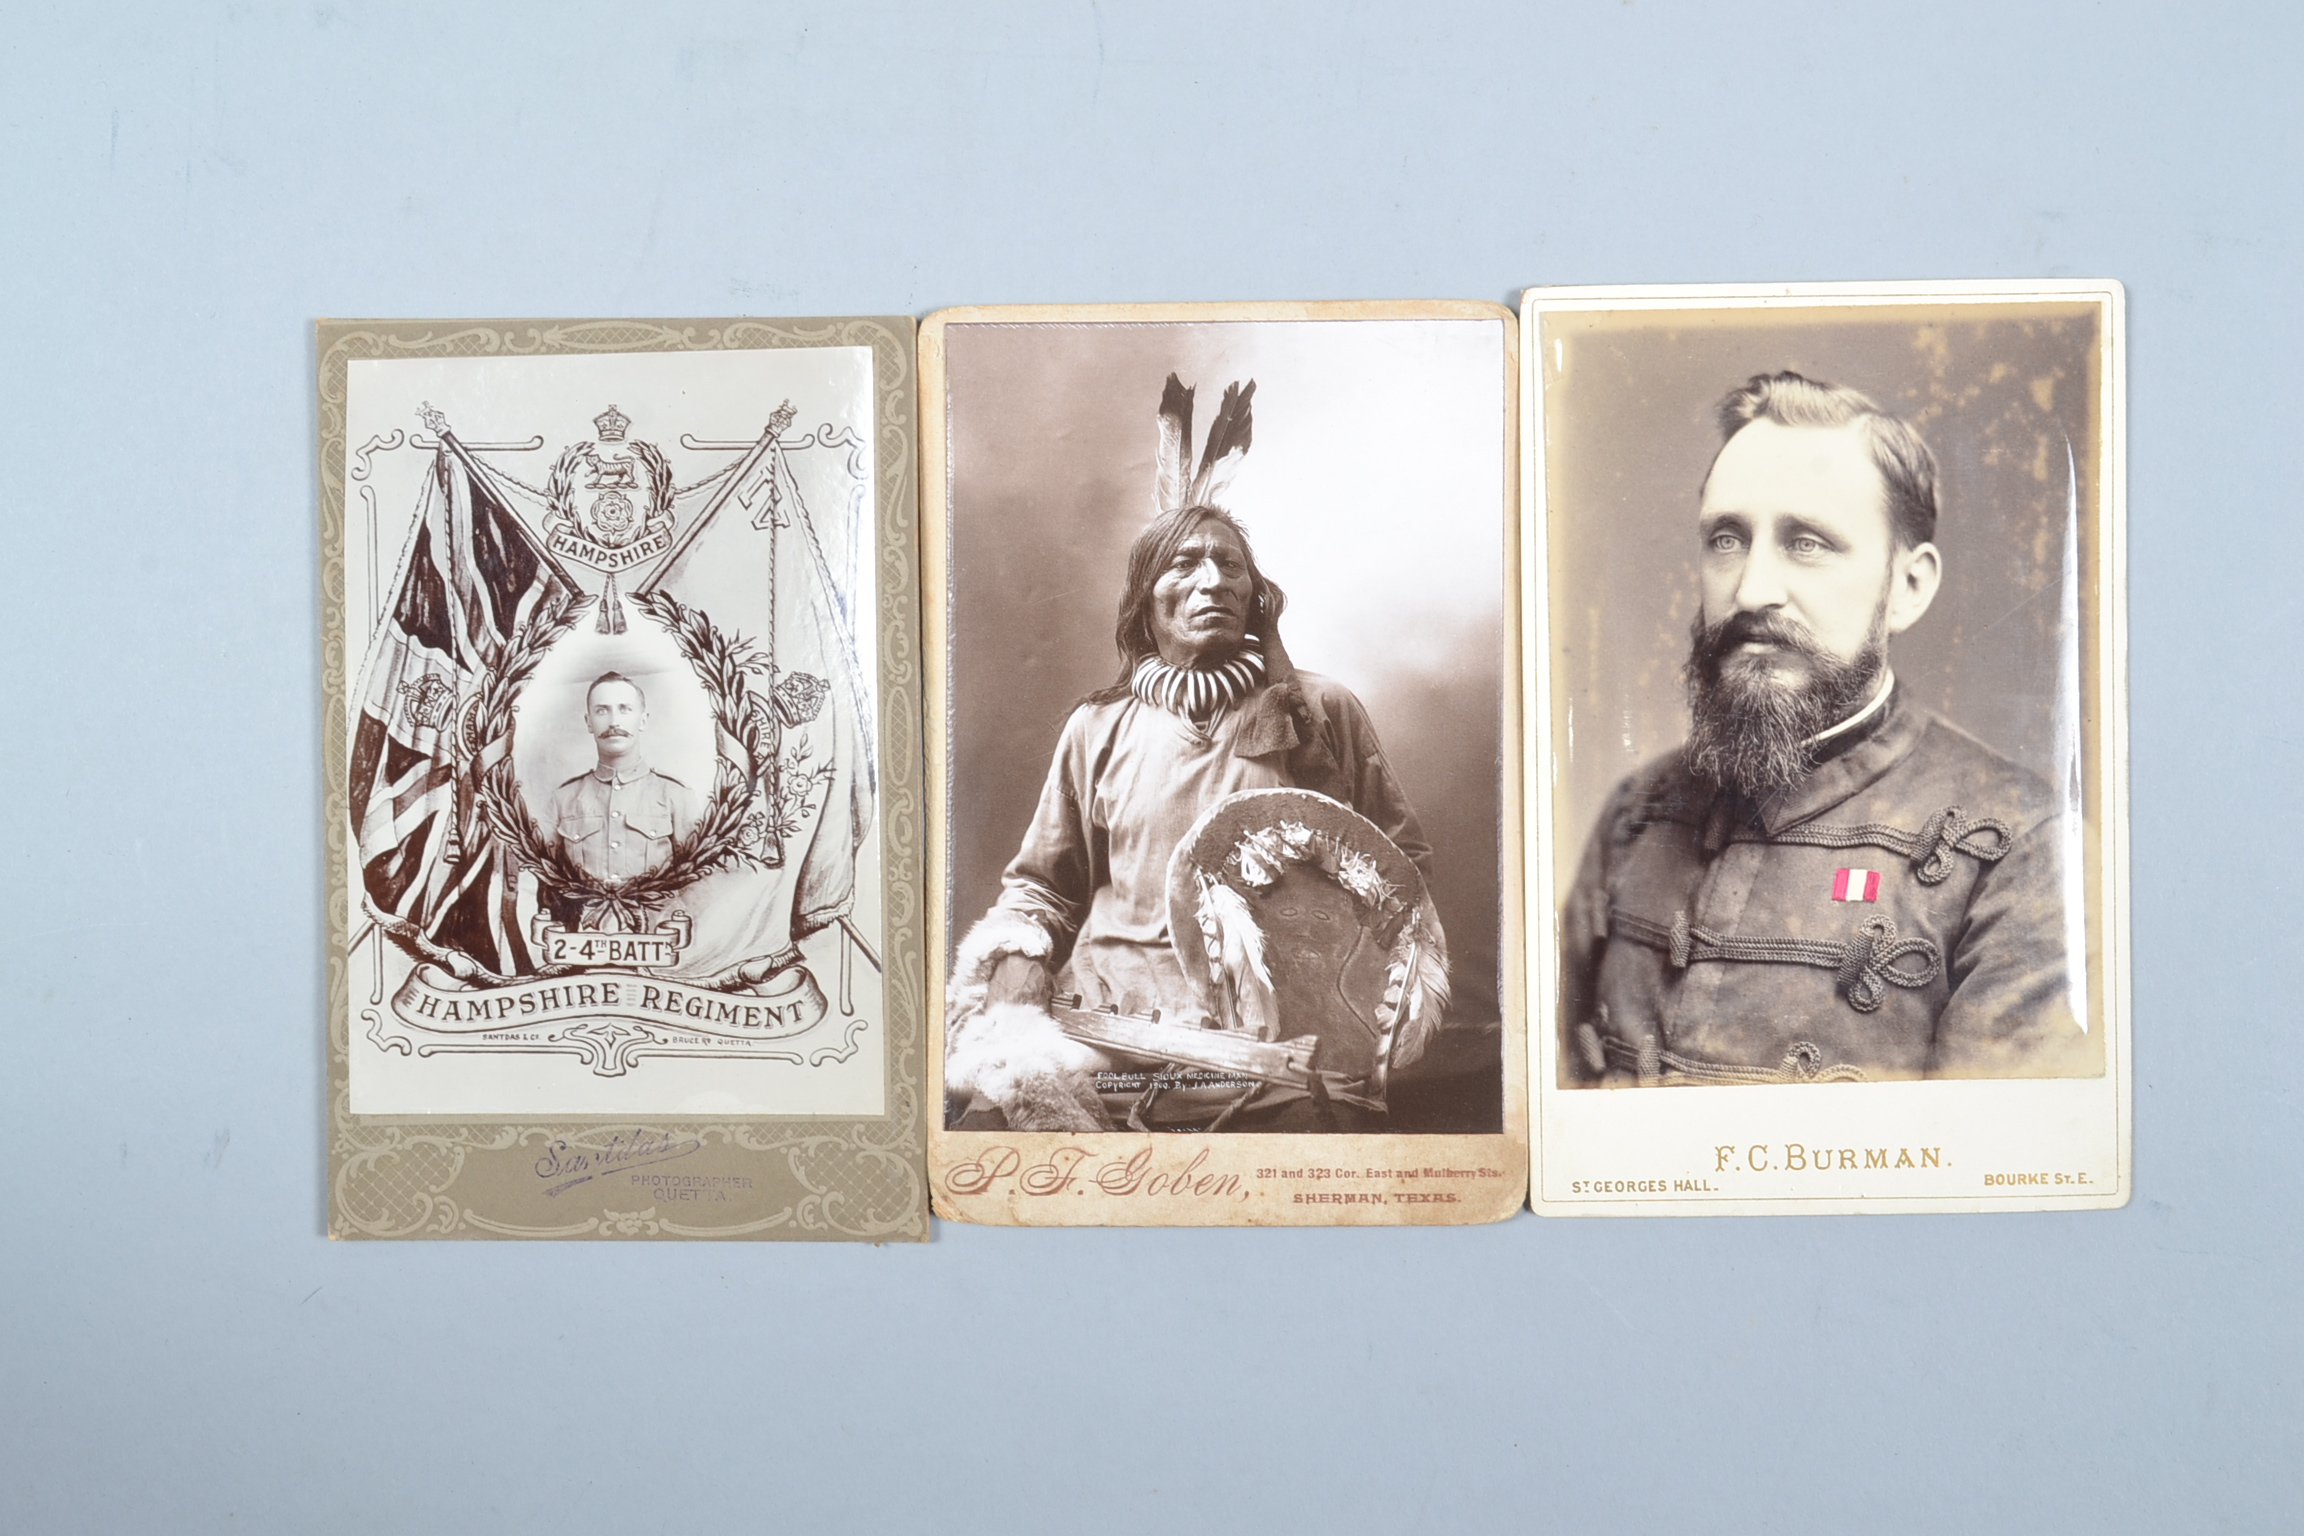 Cabinet Cards, Sioux Medicine Man, 1900/J A Anderson, sold by Goben, Sherman, Texas (1), India (